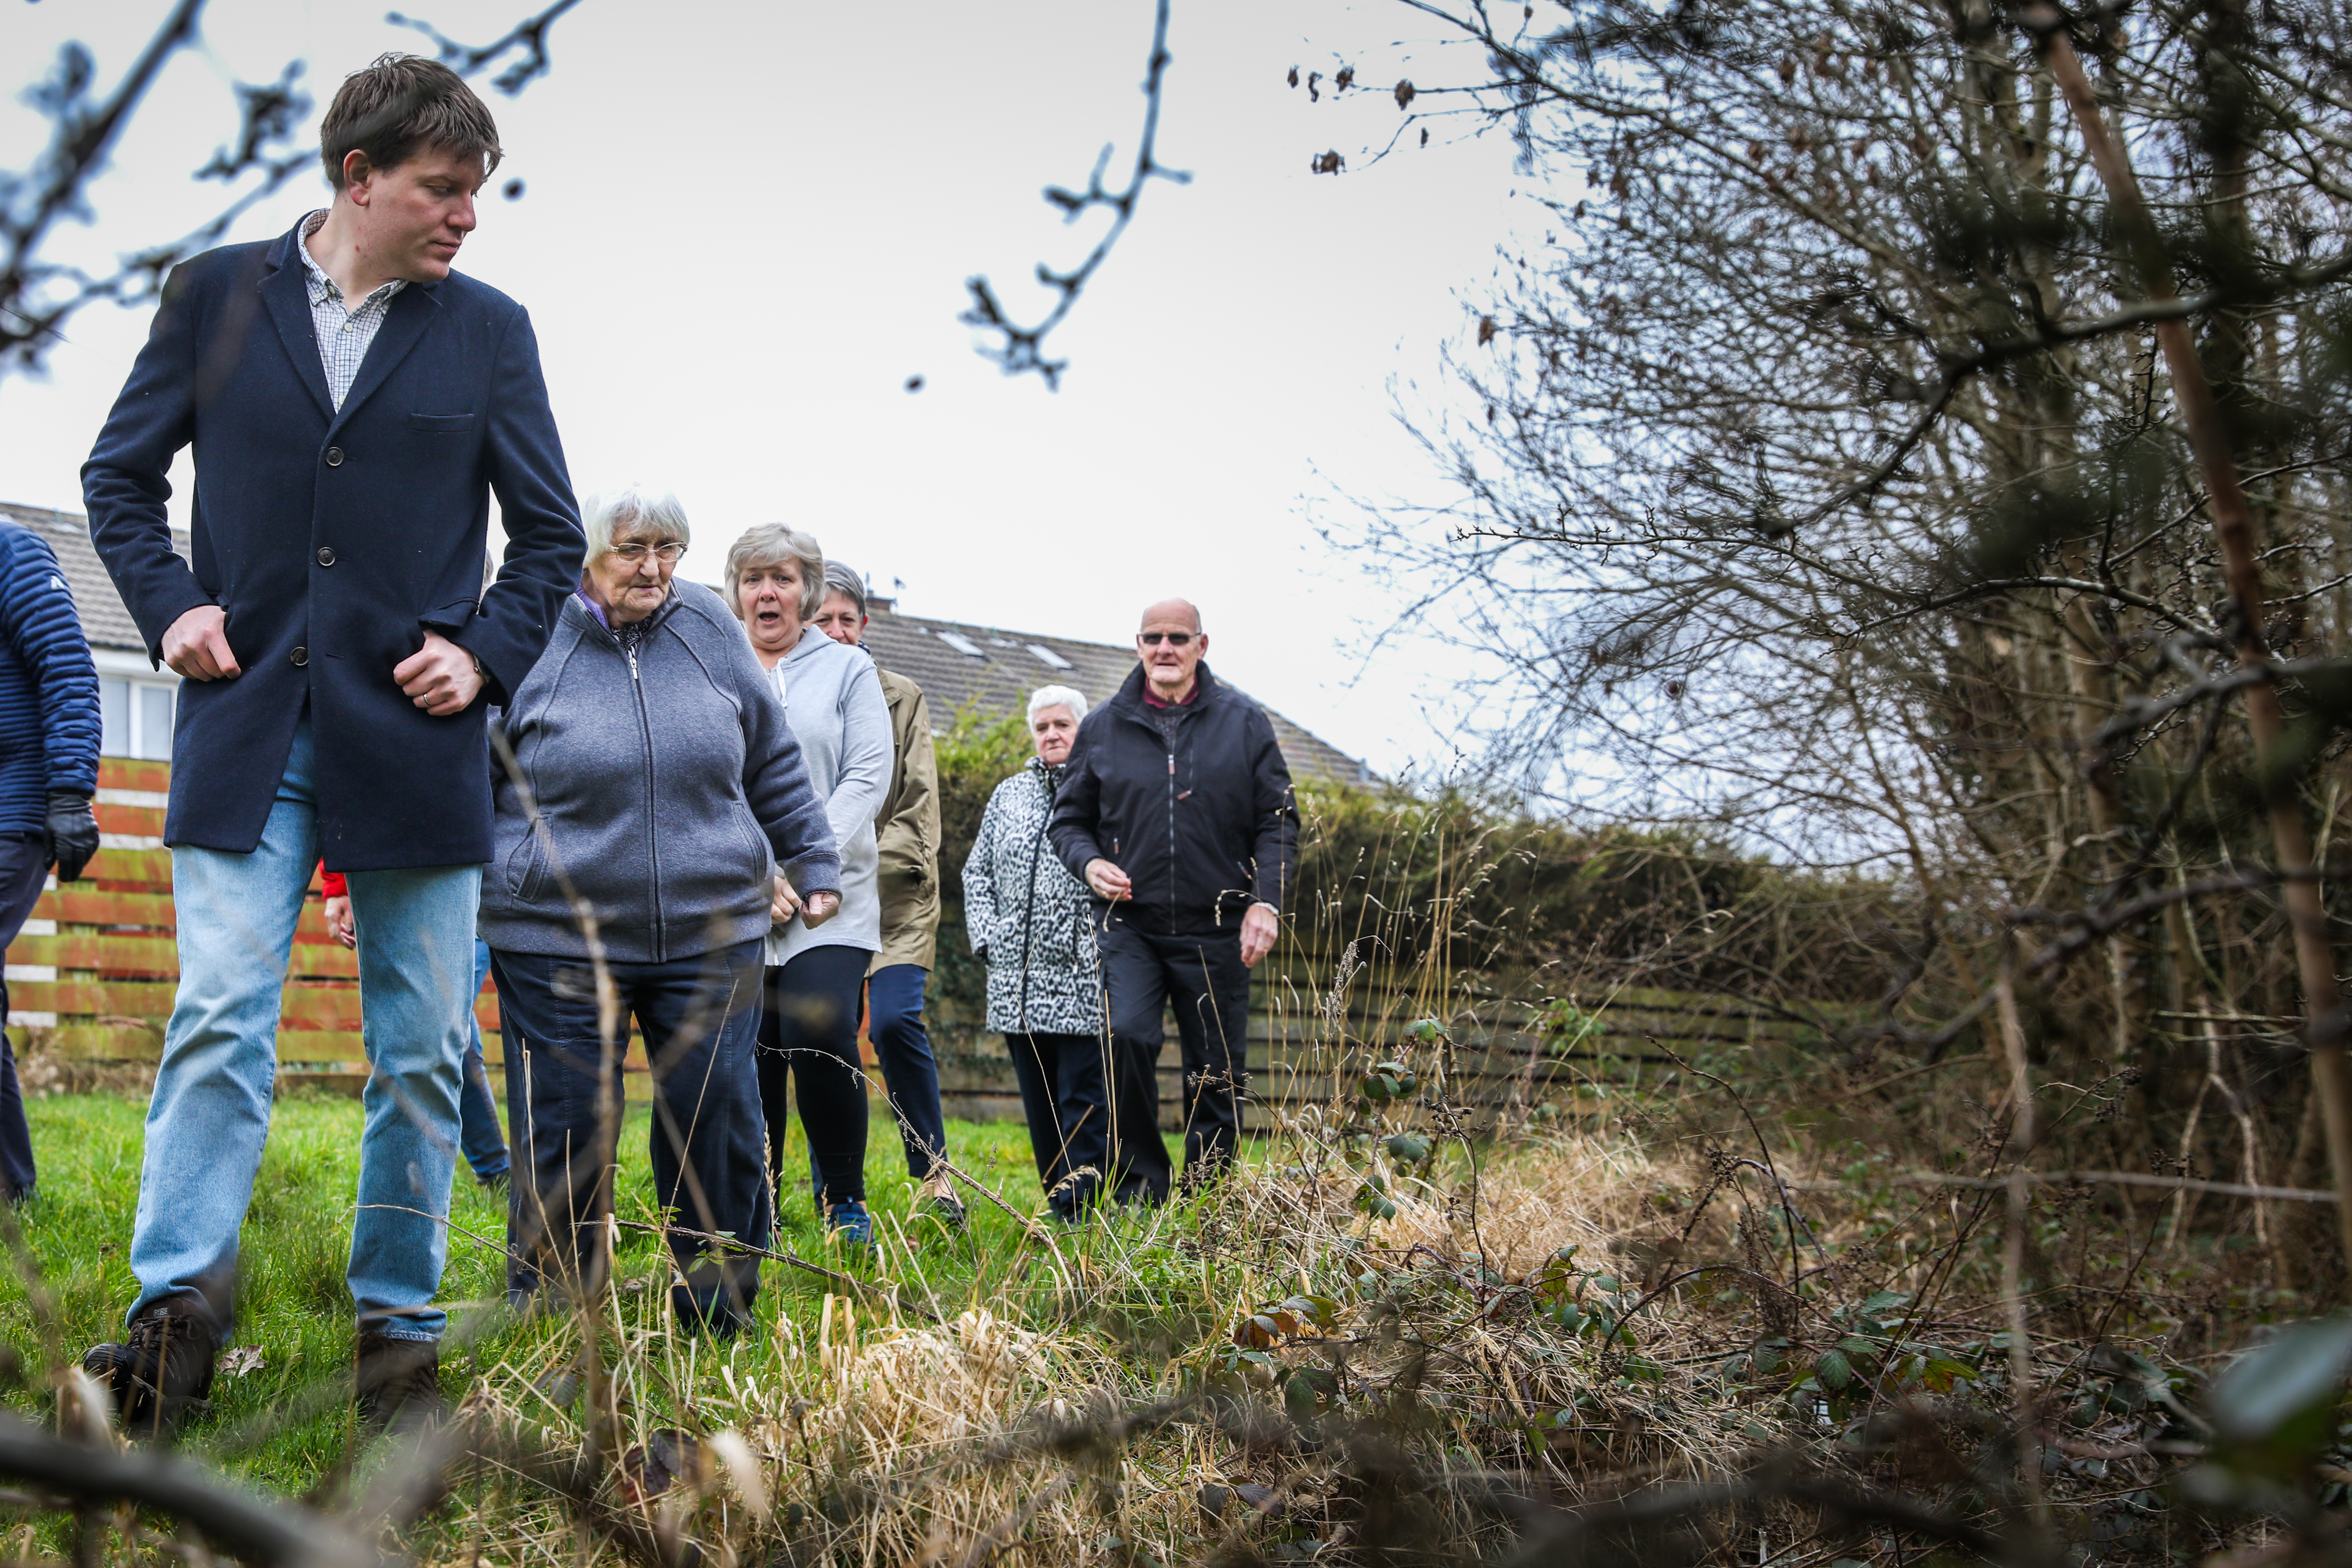 Local Lib Dem councillor James Calder with residents who have raised concerns about the burn.